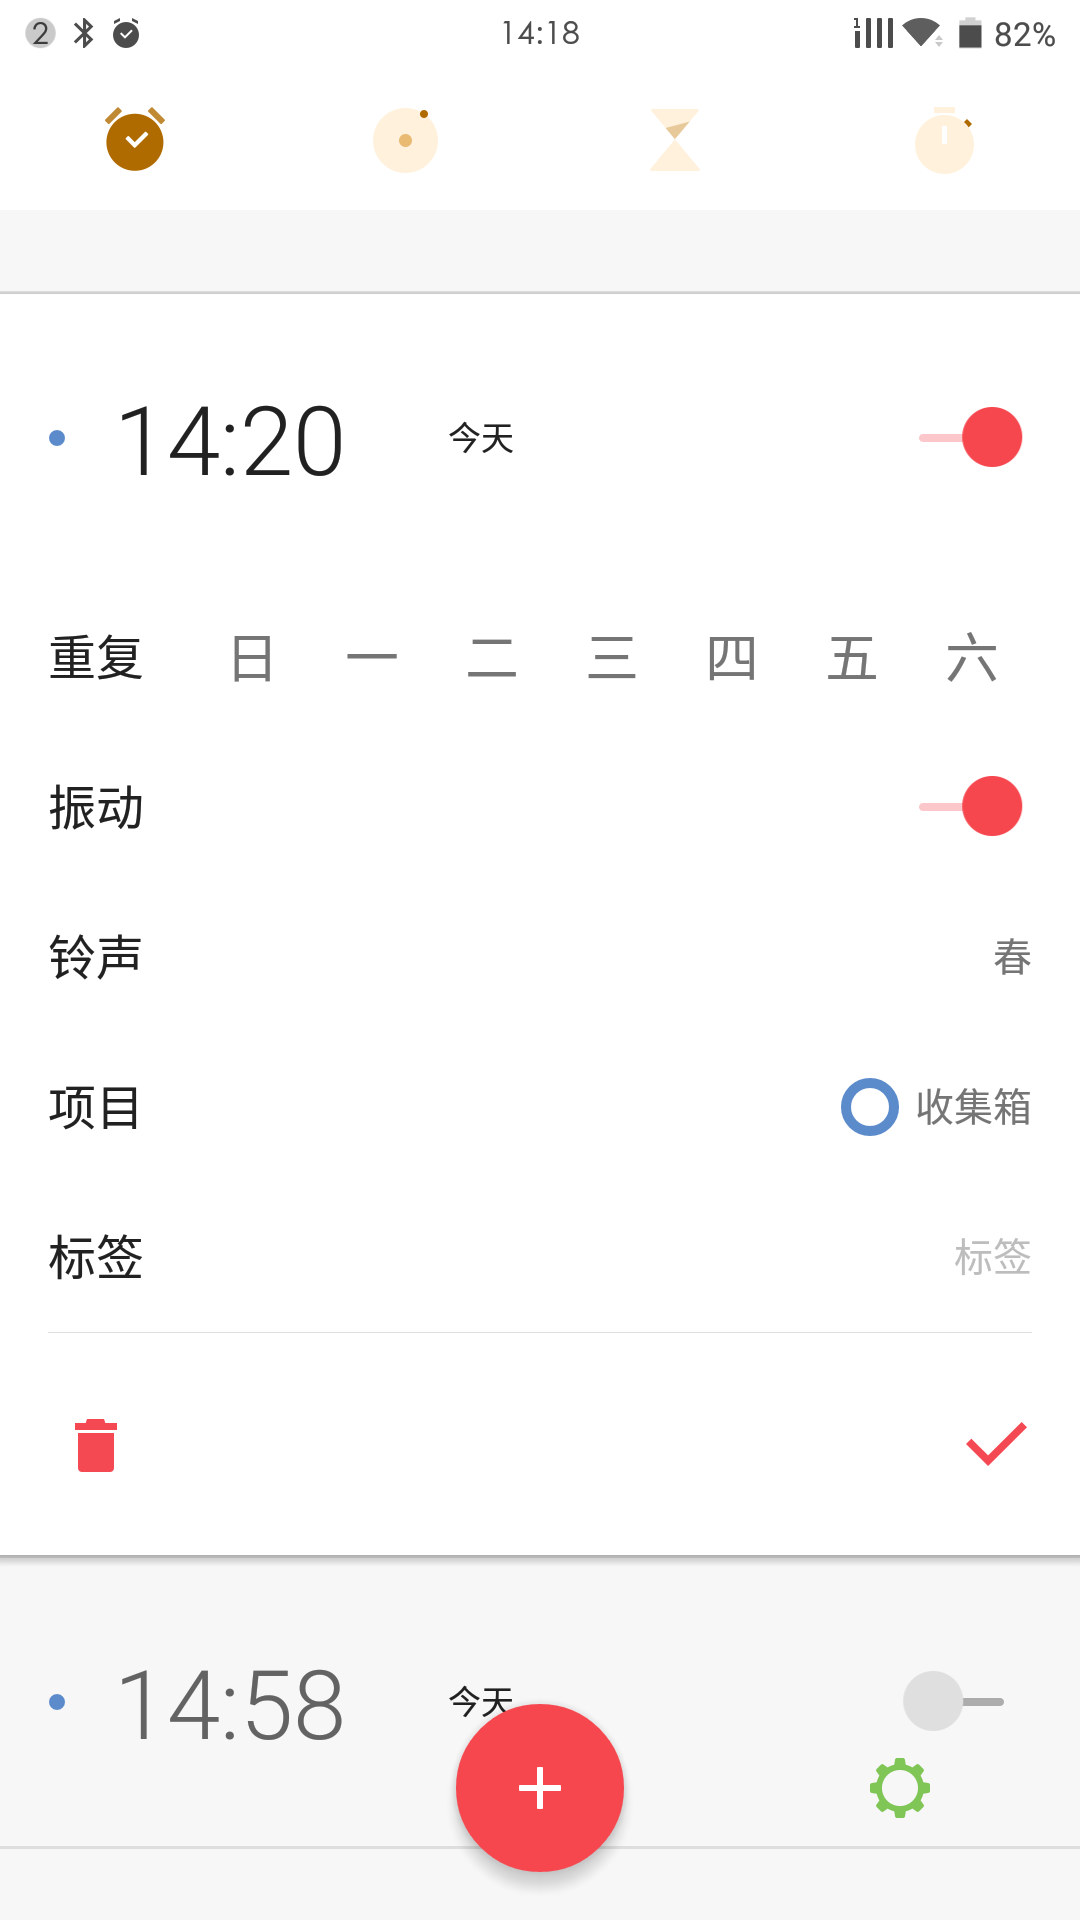 Screenshot_2015-09-15-14-18-11.png